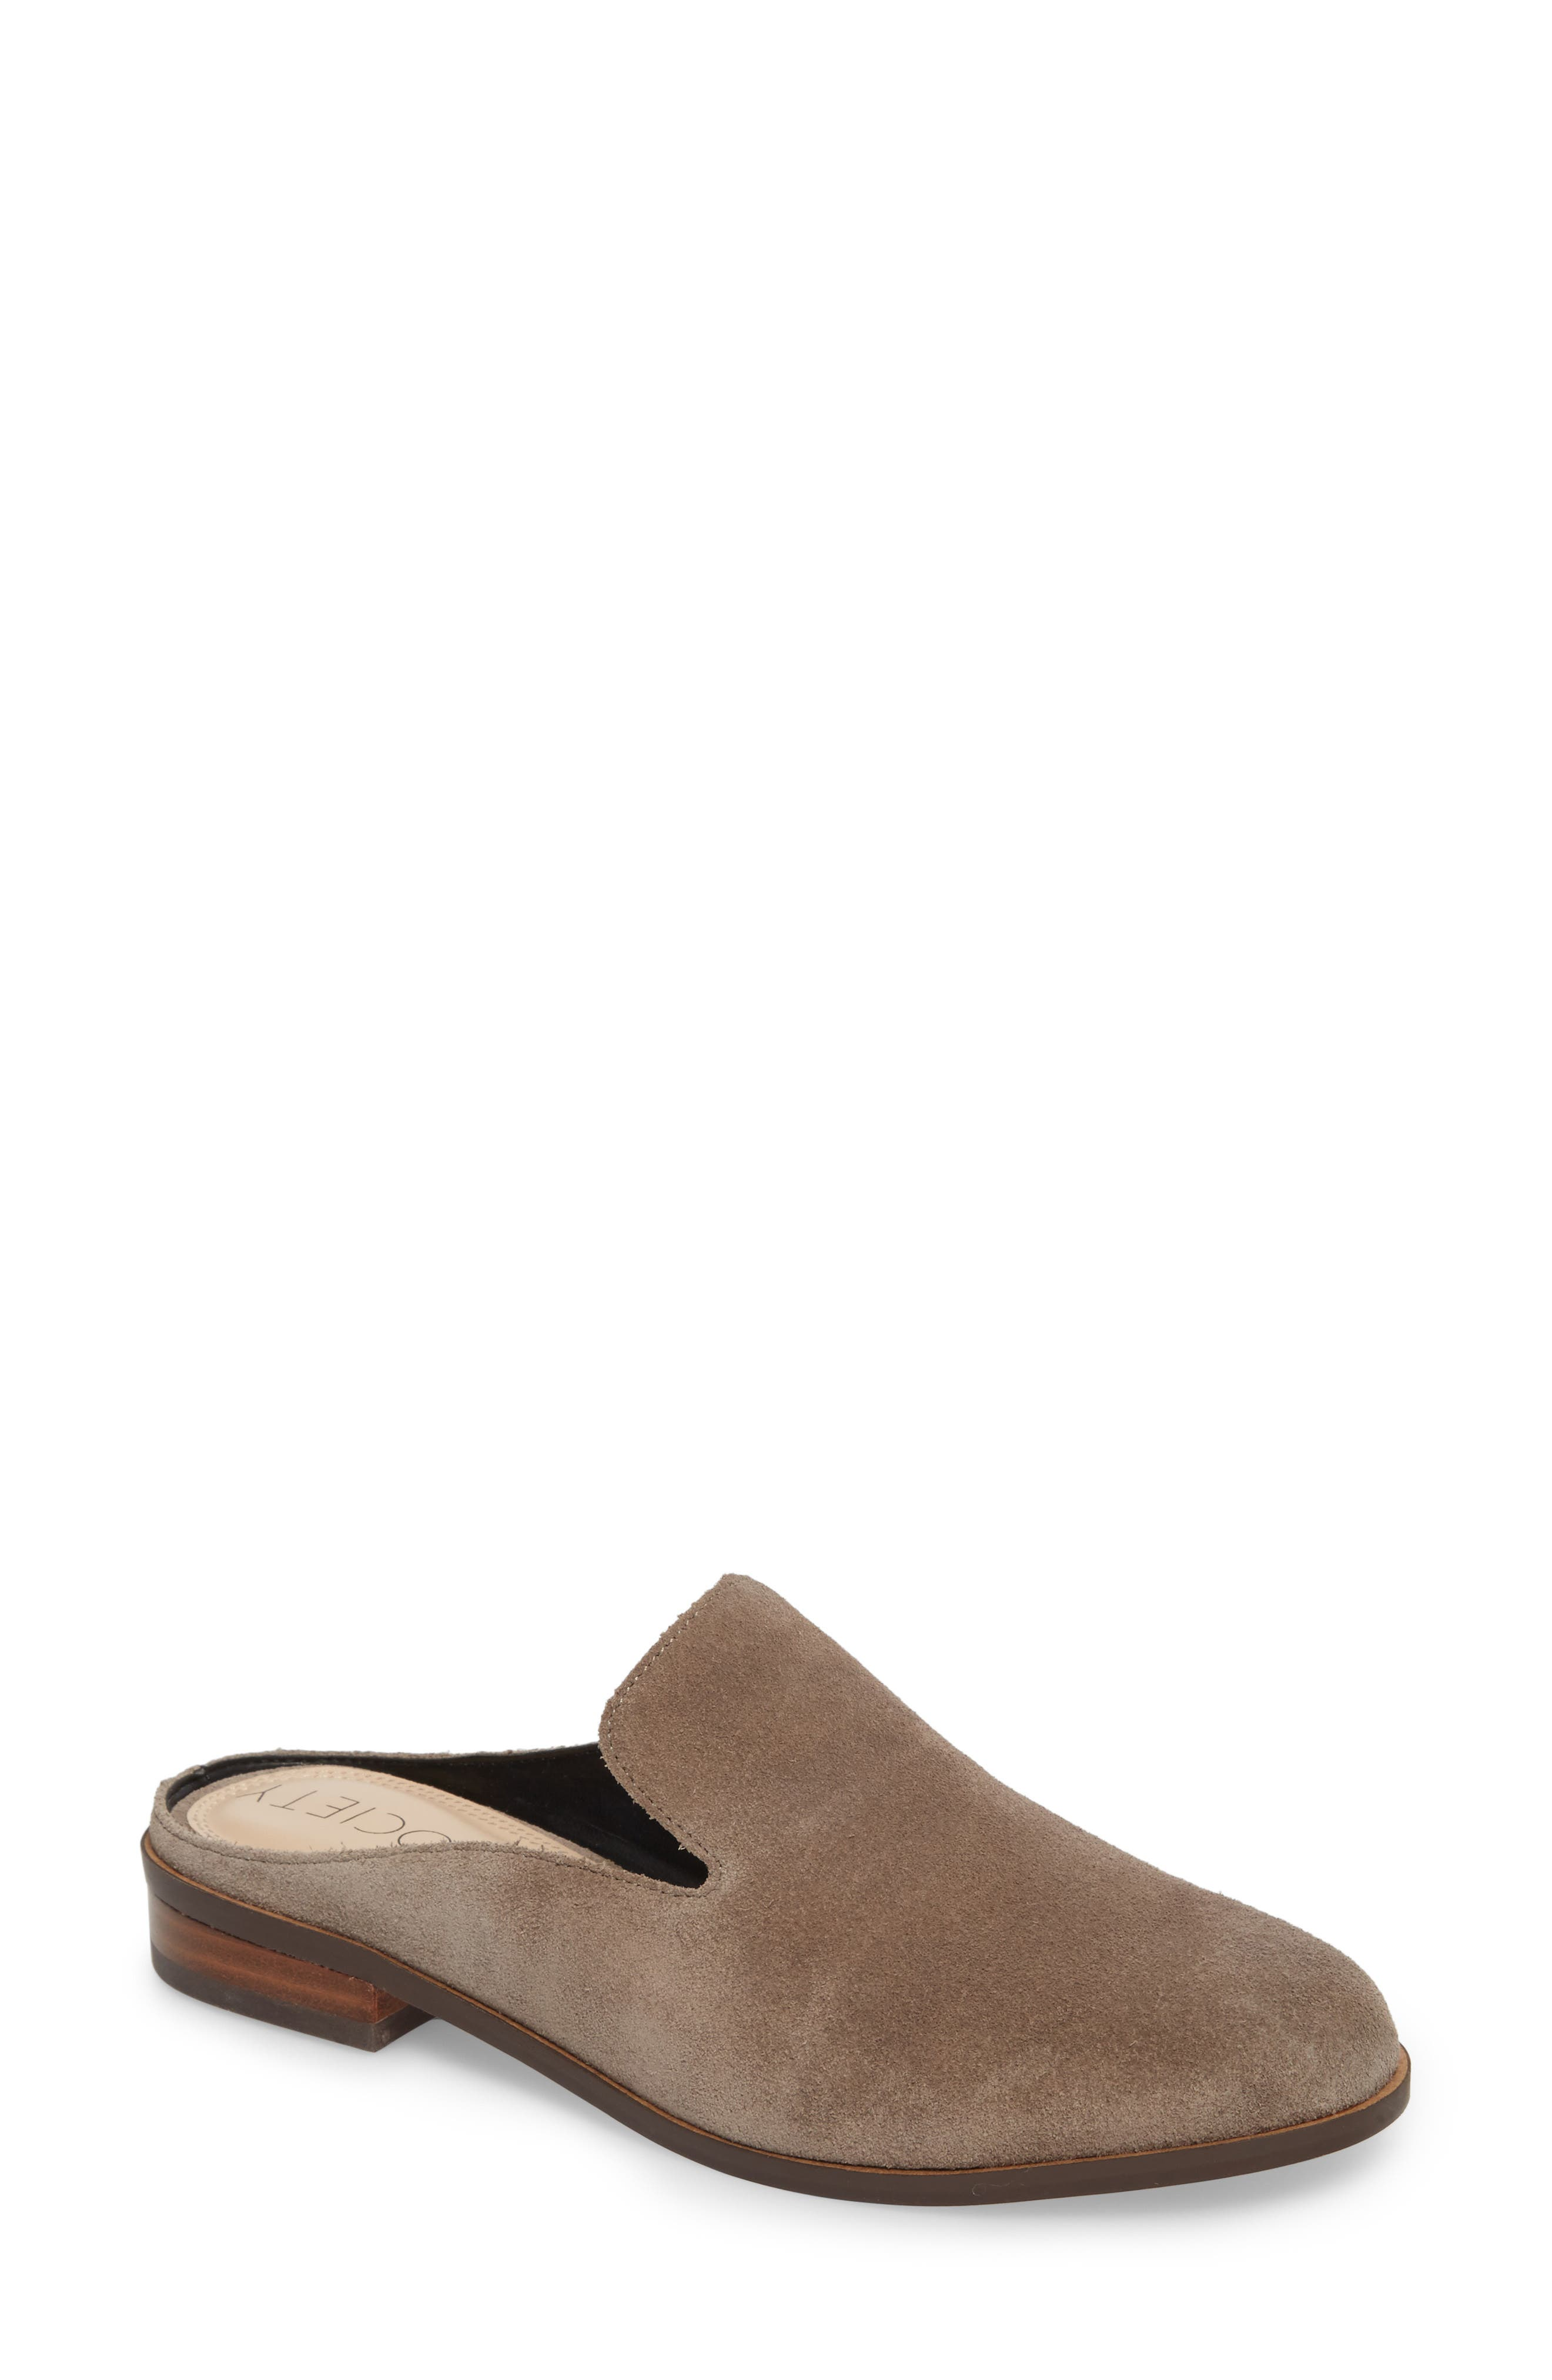 Alternate Image 1 Selected - Sole Society Esther Loafer Mule (Women)